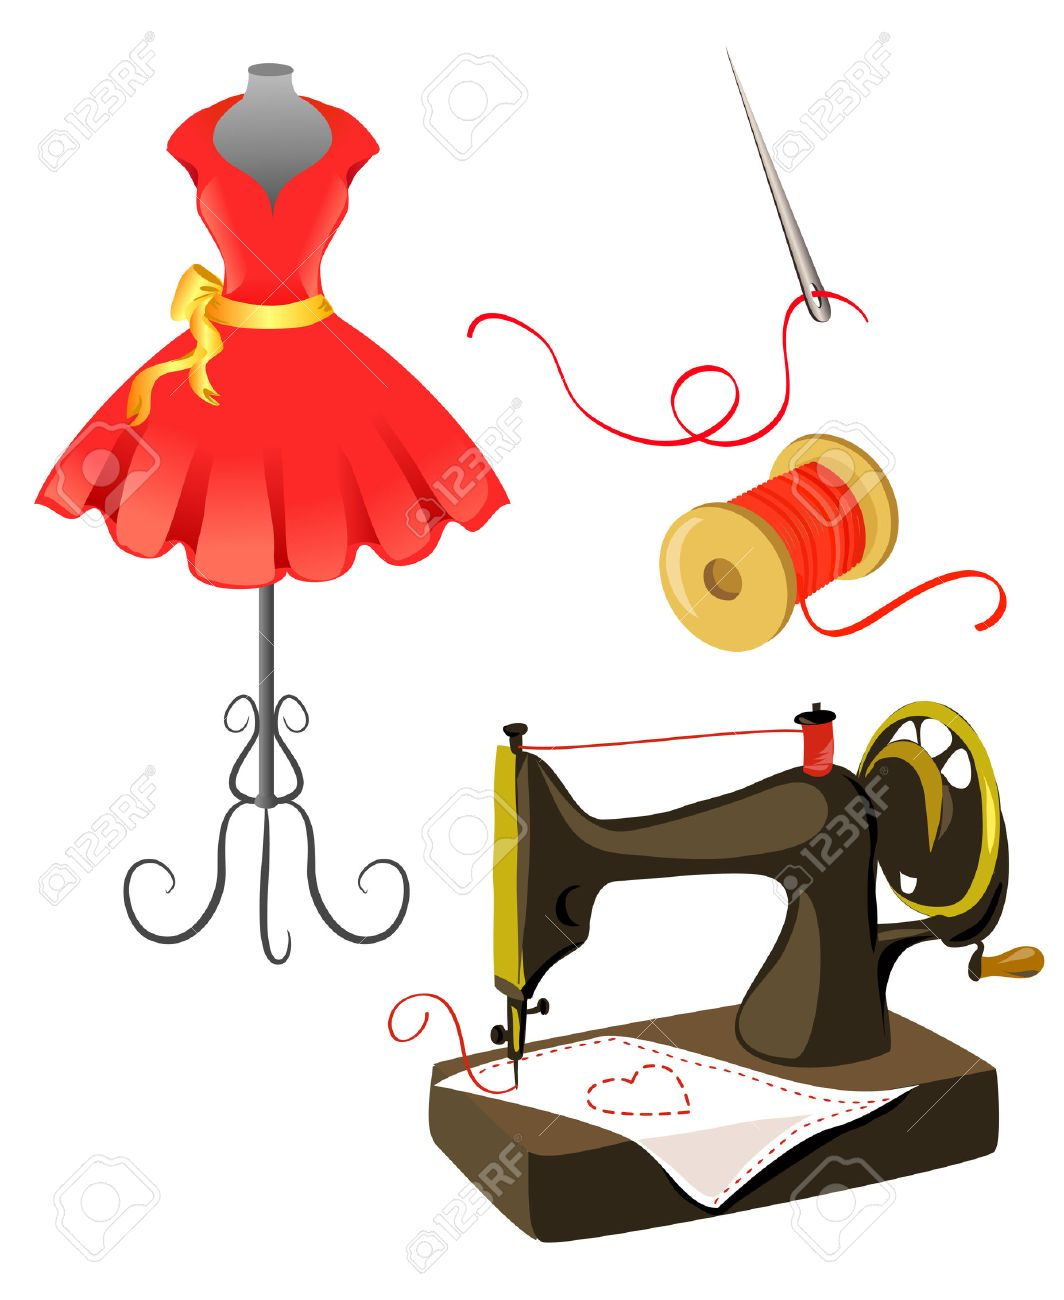 Sewing Machine Needle Clipart Sewing Machine Clipart